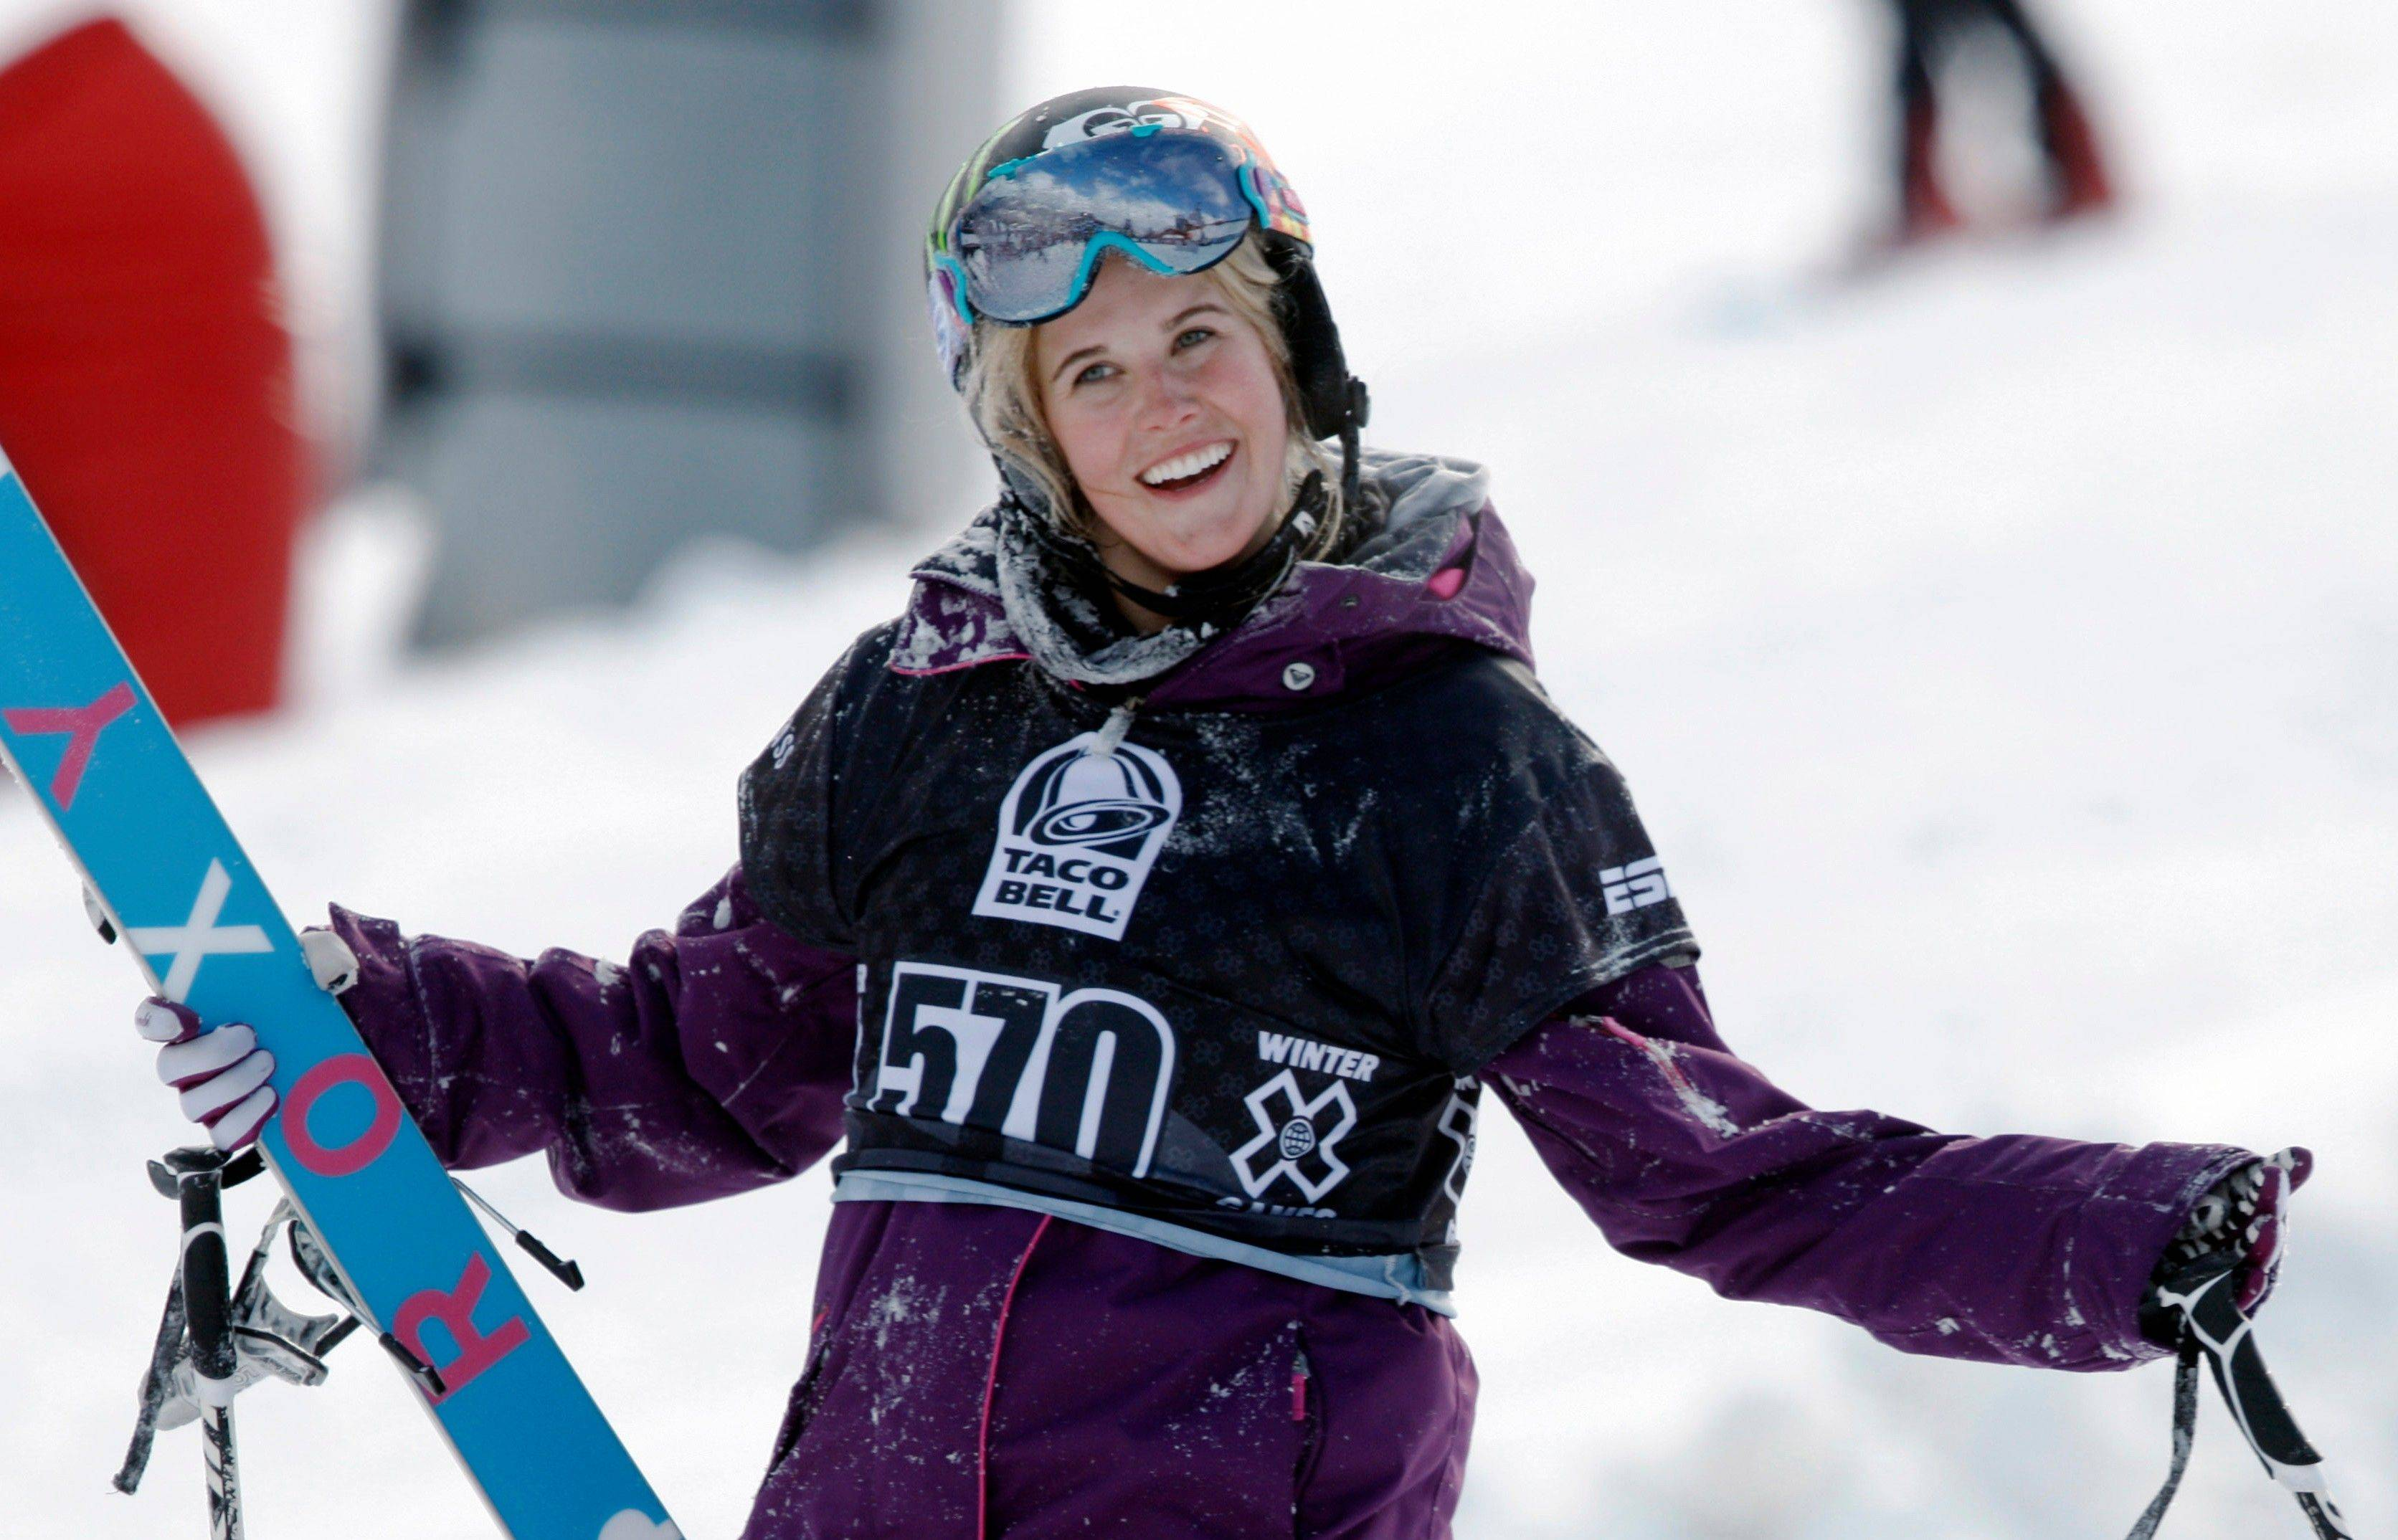 Sarah Burke reacts after failing to place in the top-three finishers in the slopestyle skiing women's final at the Winter X Games at Buttermilk Mountain outside Aspen, Colo. Burke died Thursday, nine days after crashing at the bottom of the superpipe during a training run in Utah. She was 29. Burke was injured Jan. 11 while training at a personal sponsor event at the Park City Mountain resort.